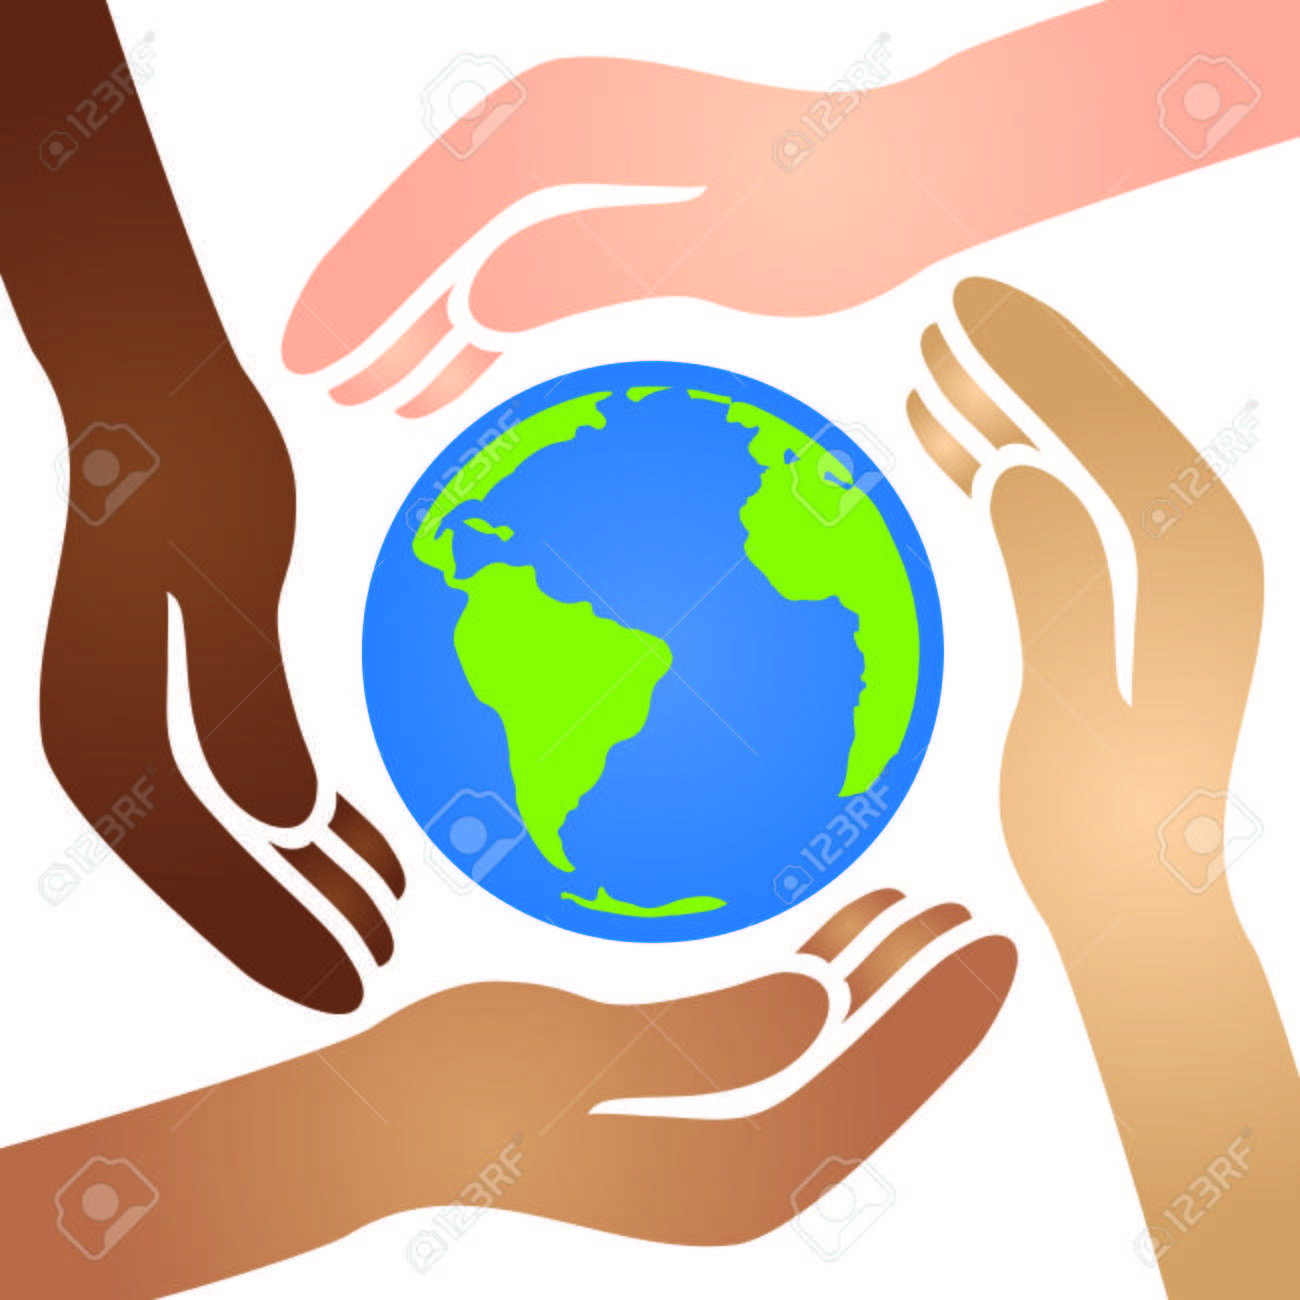 Joining hands together clipart 7 » Clipart Portal.